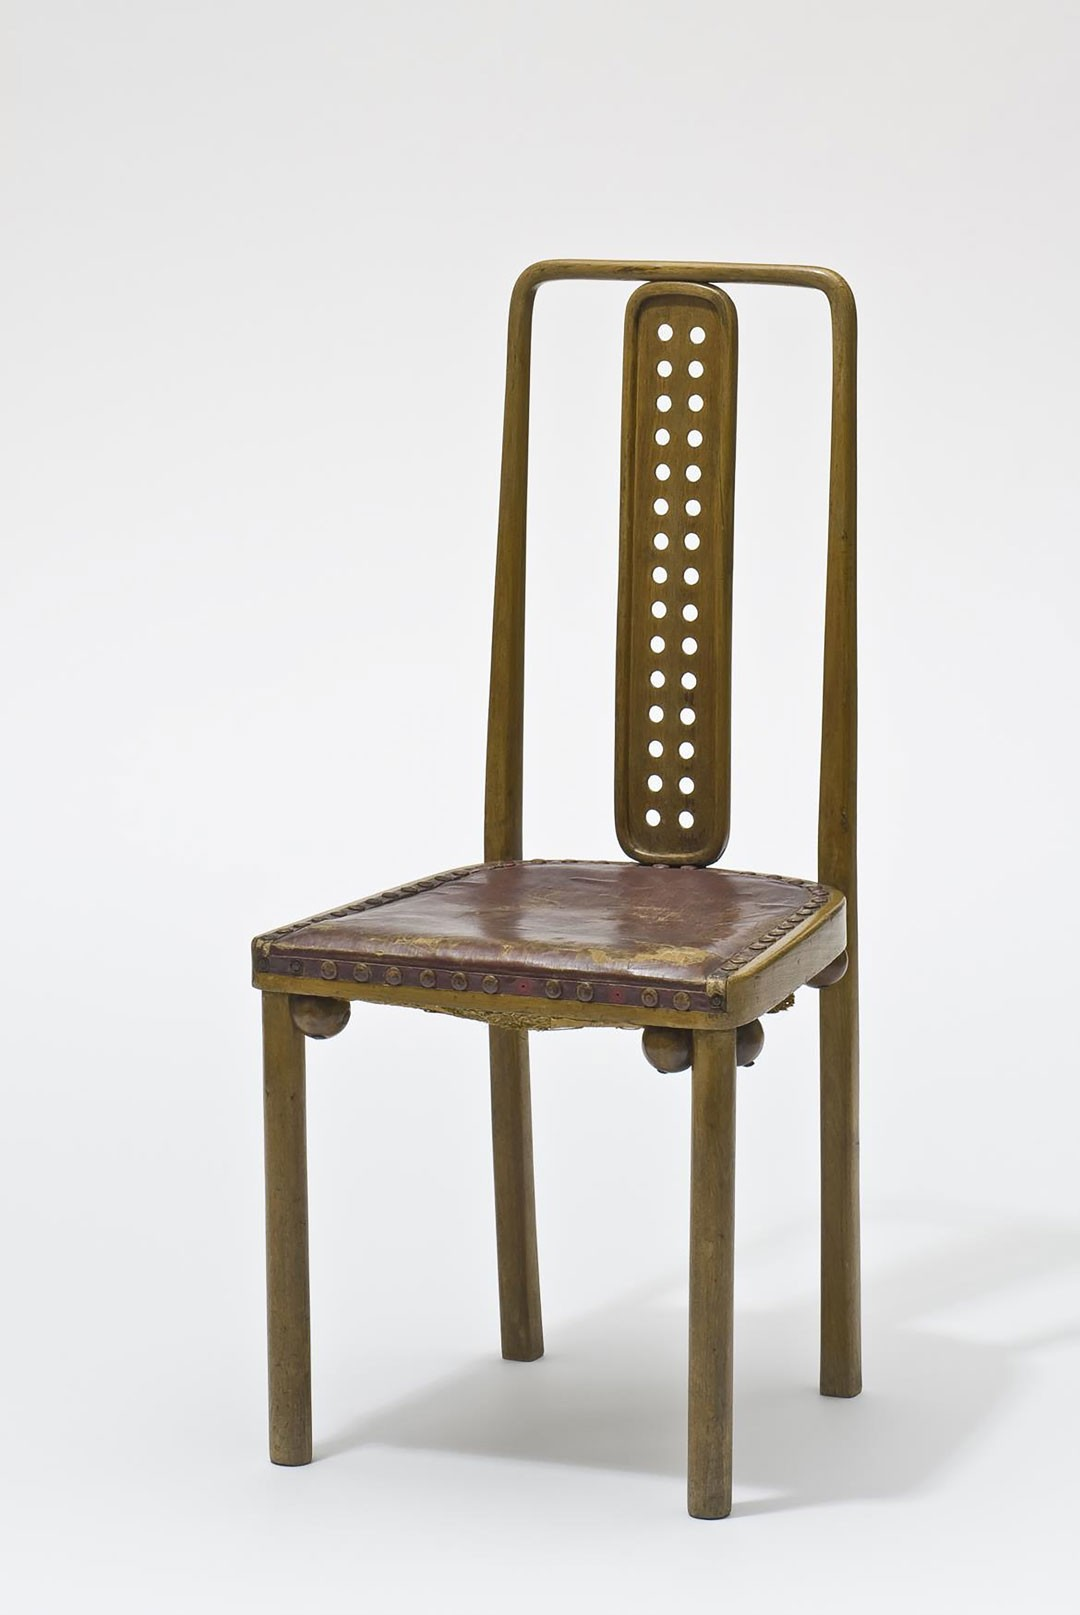 <BODY>Josef Hoffmann, Chair, Model No. 322, for the dining room of the Sanatorium Westend in Purkersdorf, Vienna, 1904<br />© MAK/Georg Mayer</BODY>